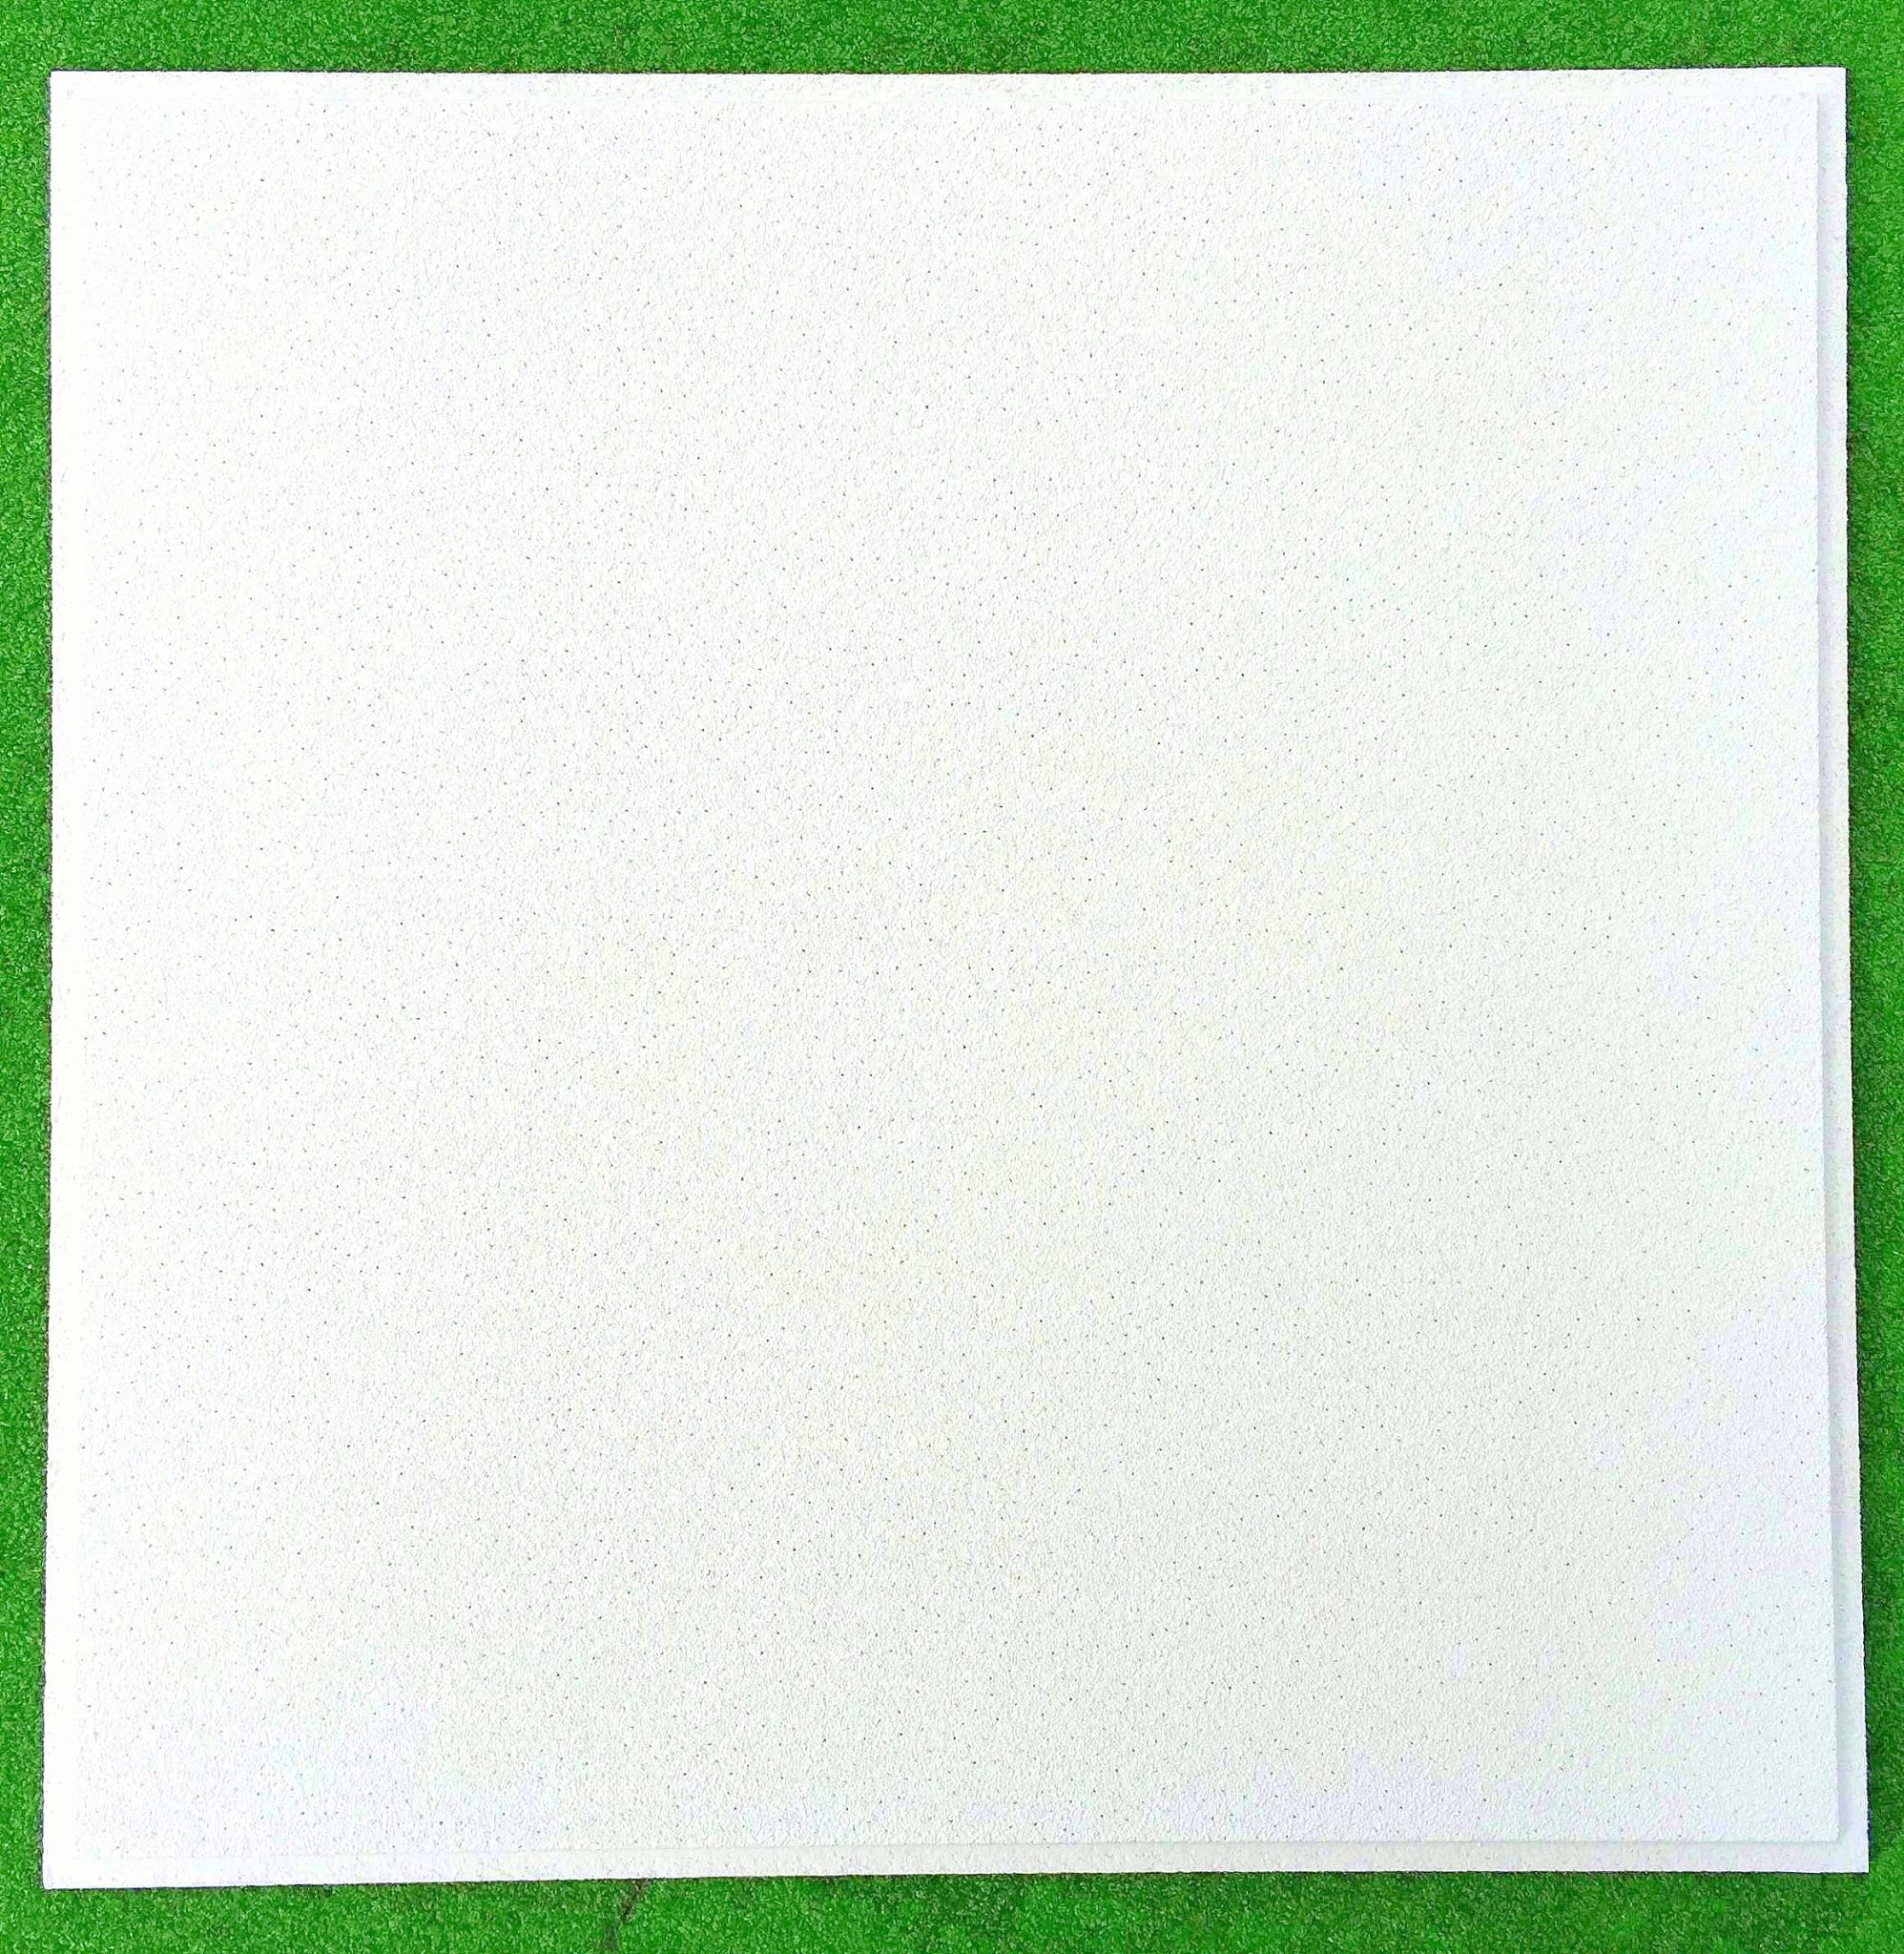 Fine fissured tegular ceiling tiles board 600 x 600mm square edge 24mm armstrong fine fissured tegular ceiling tiles board 600 x 600mm square edge 24mm dailygadgetfo Choice Image